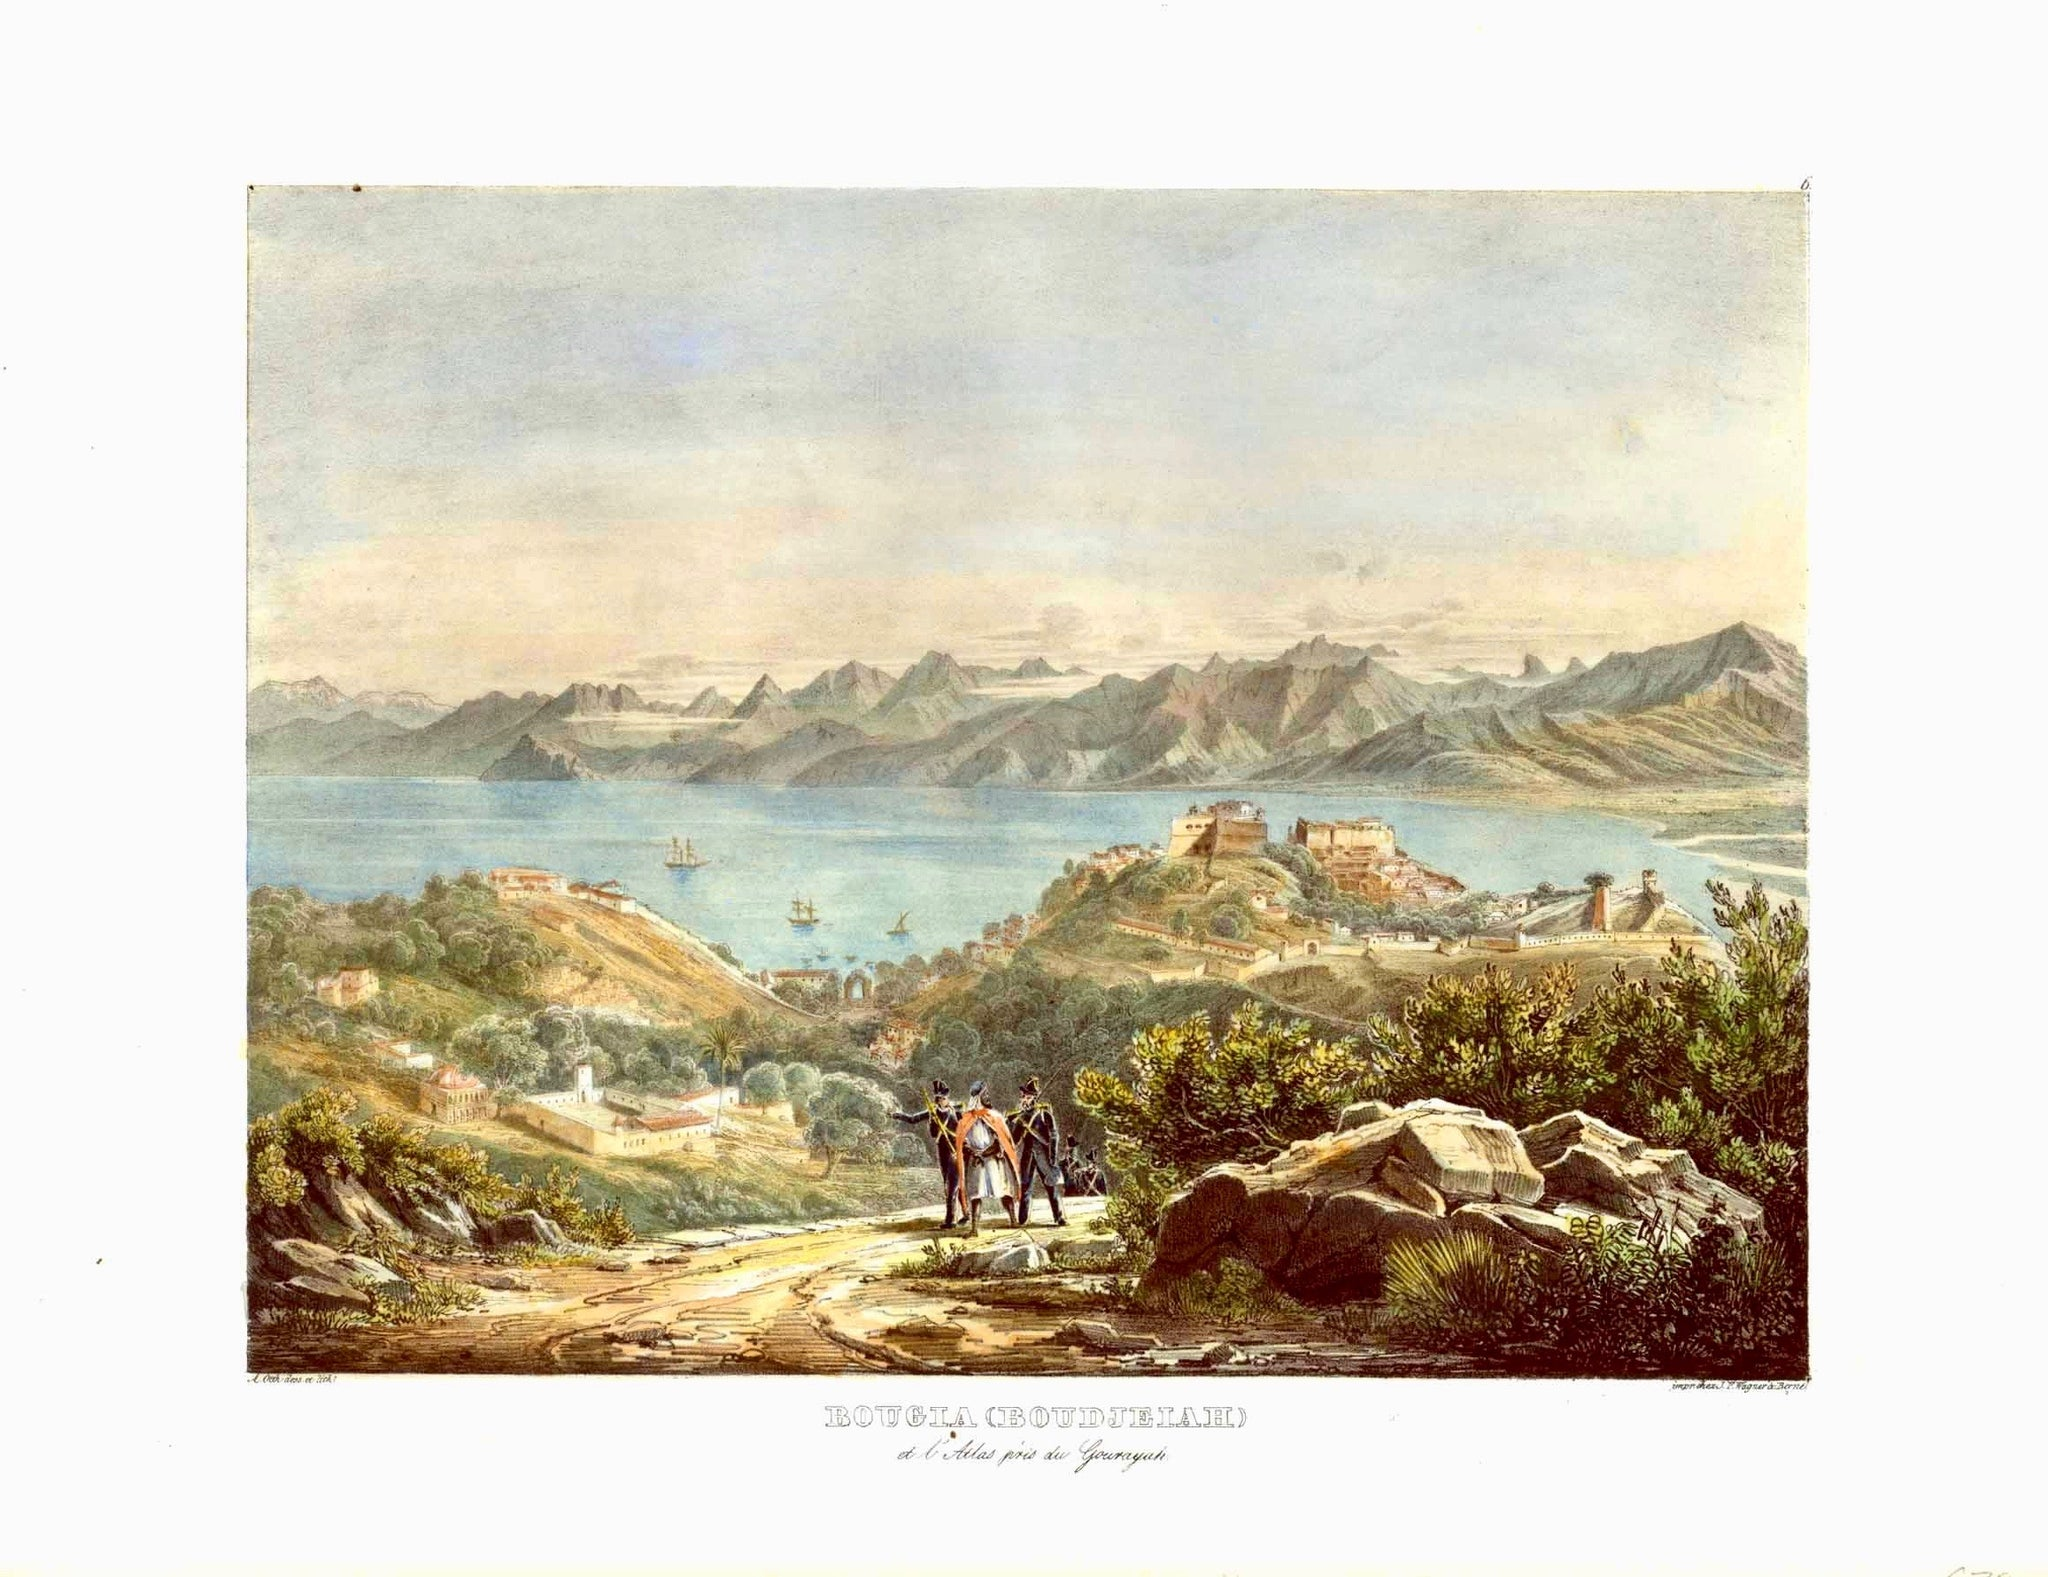 "Bougia (Boudjeiah). View of Algeria originates from Adolphe Otth's travel observations in Algeria. He was the designer and lithographer for this astounding series which were published by J. F. Wagner at Berne, Switzerland.Ca 1850 as Esquisses africaines, dessinées pendant un voyage à Alger""."